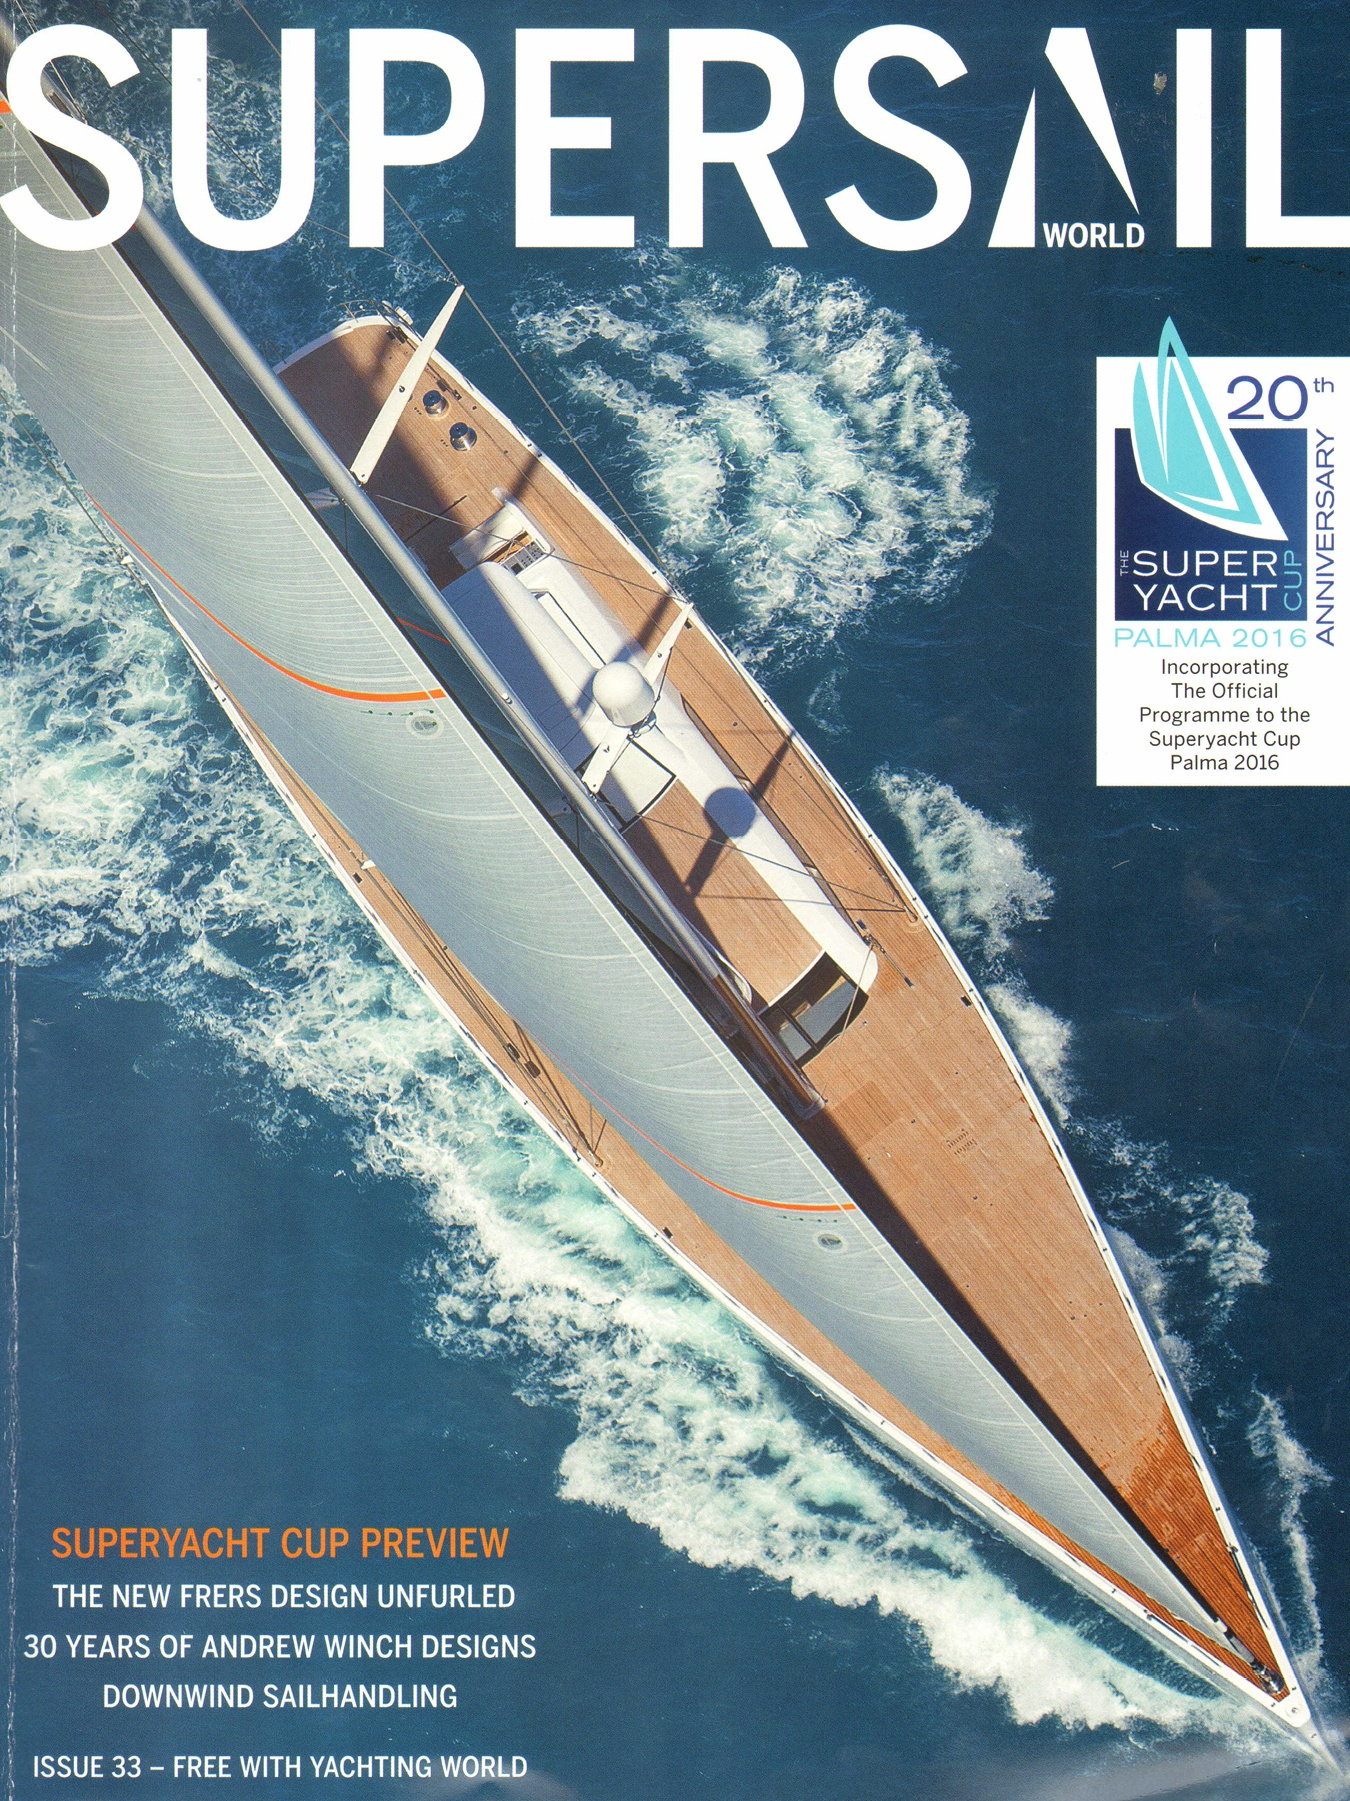 Supersail World Jul-Sep 2016 Front Cover_2.jpg